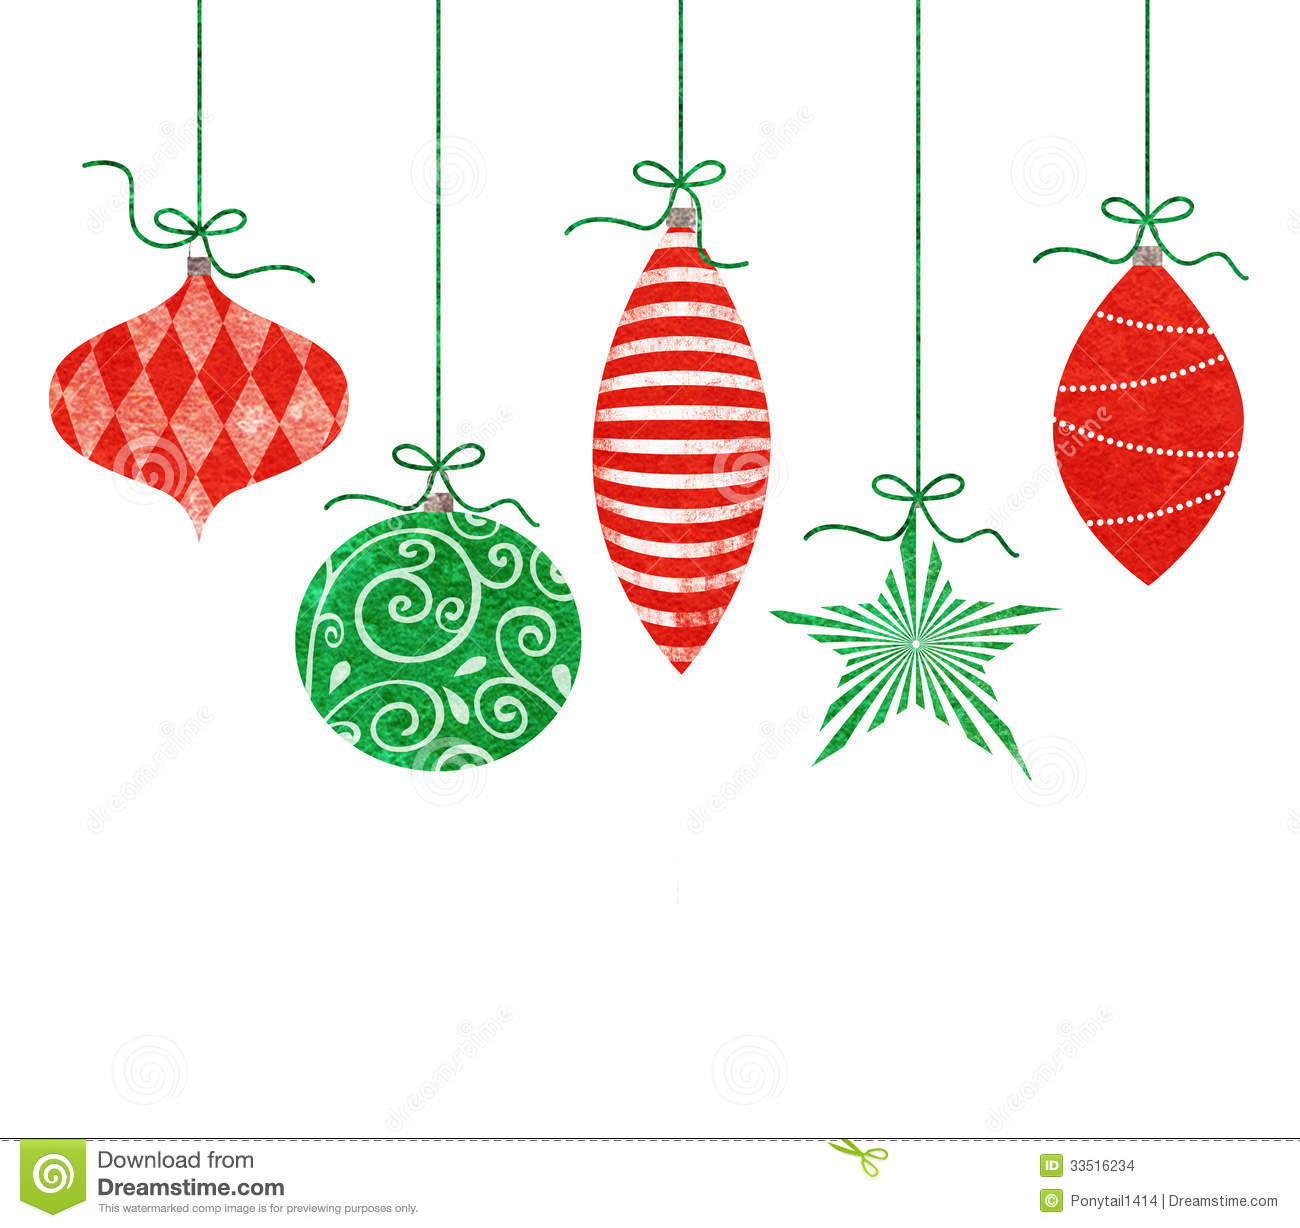 Christmas Balls Drawing at GetDrawings.com | Free for personal use ...